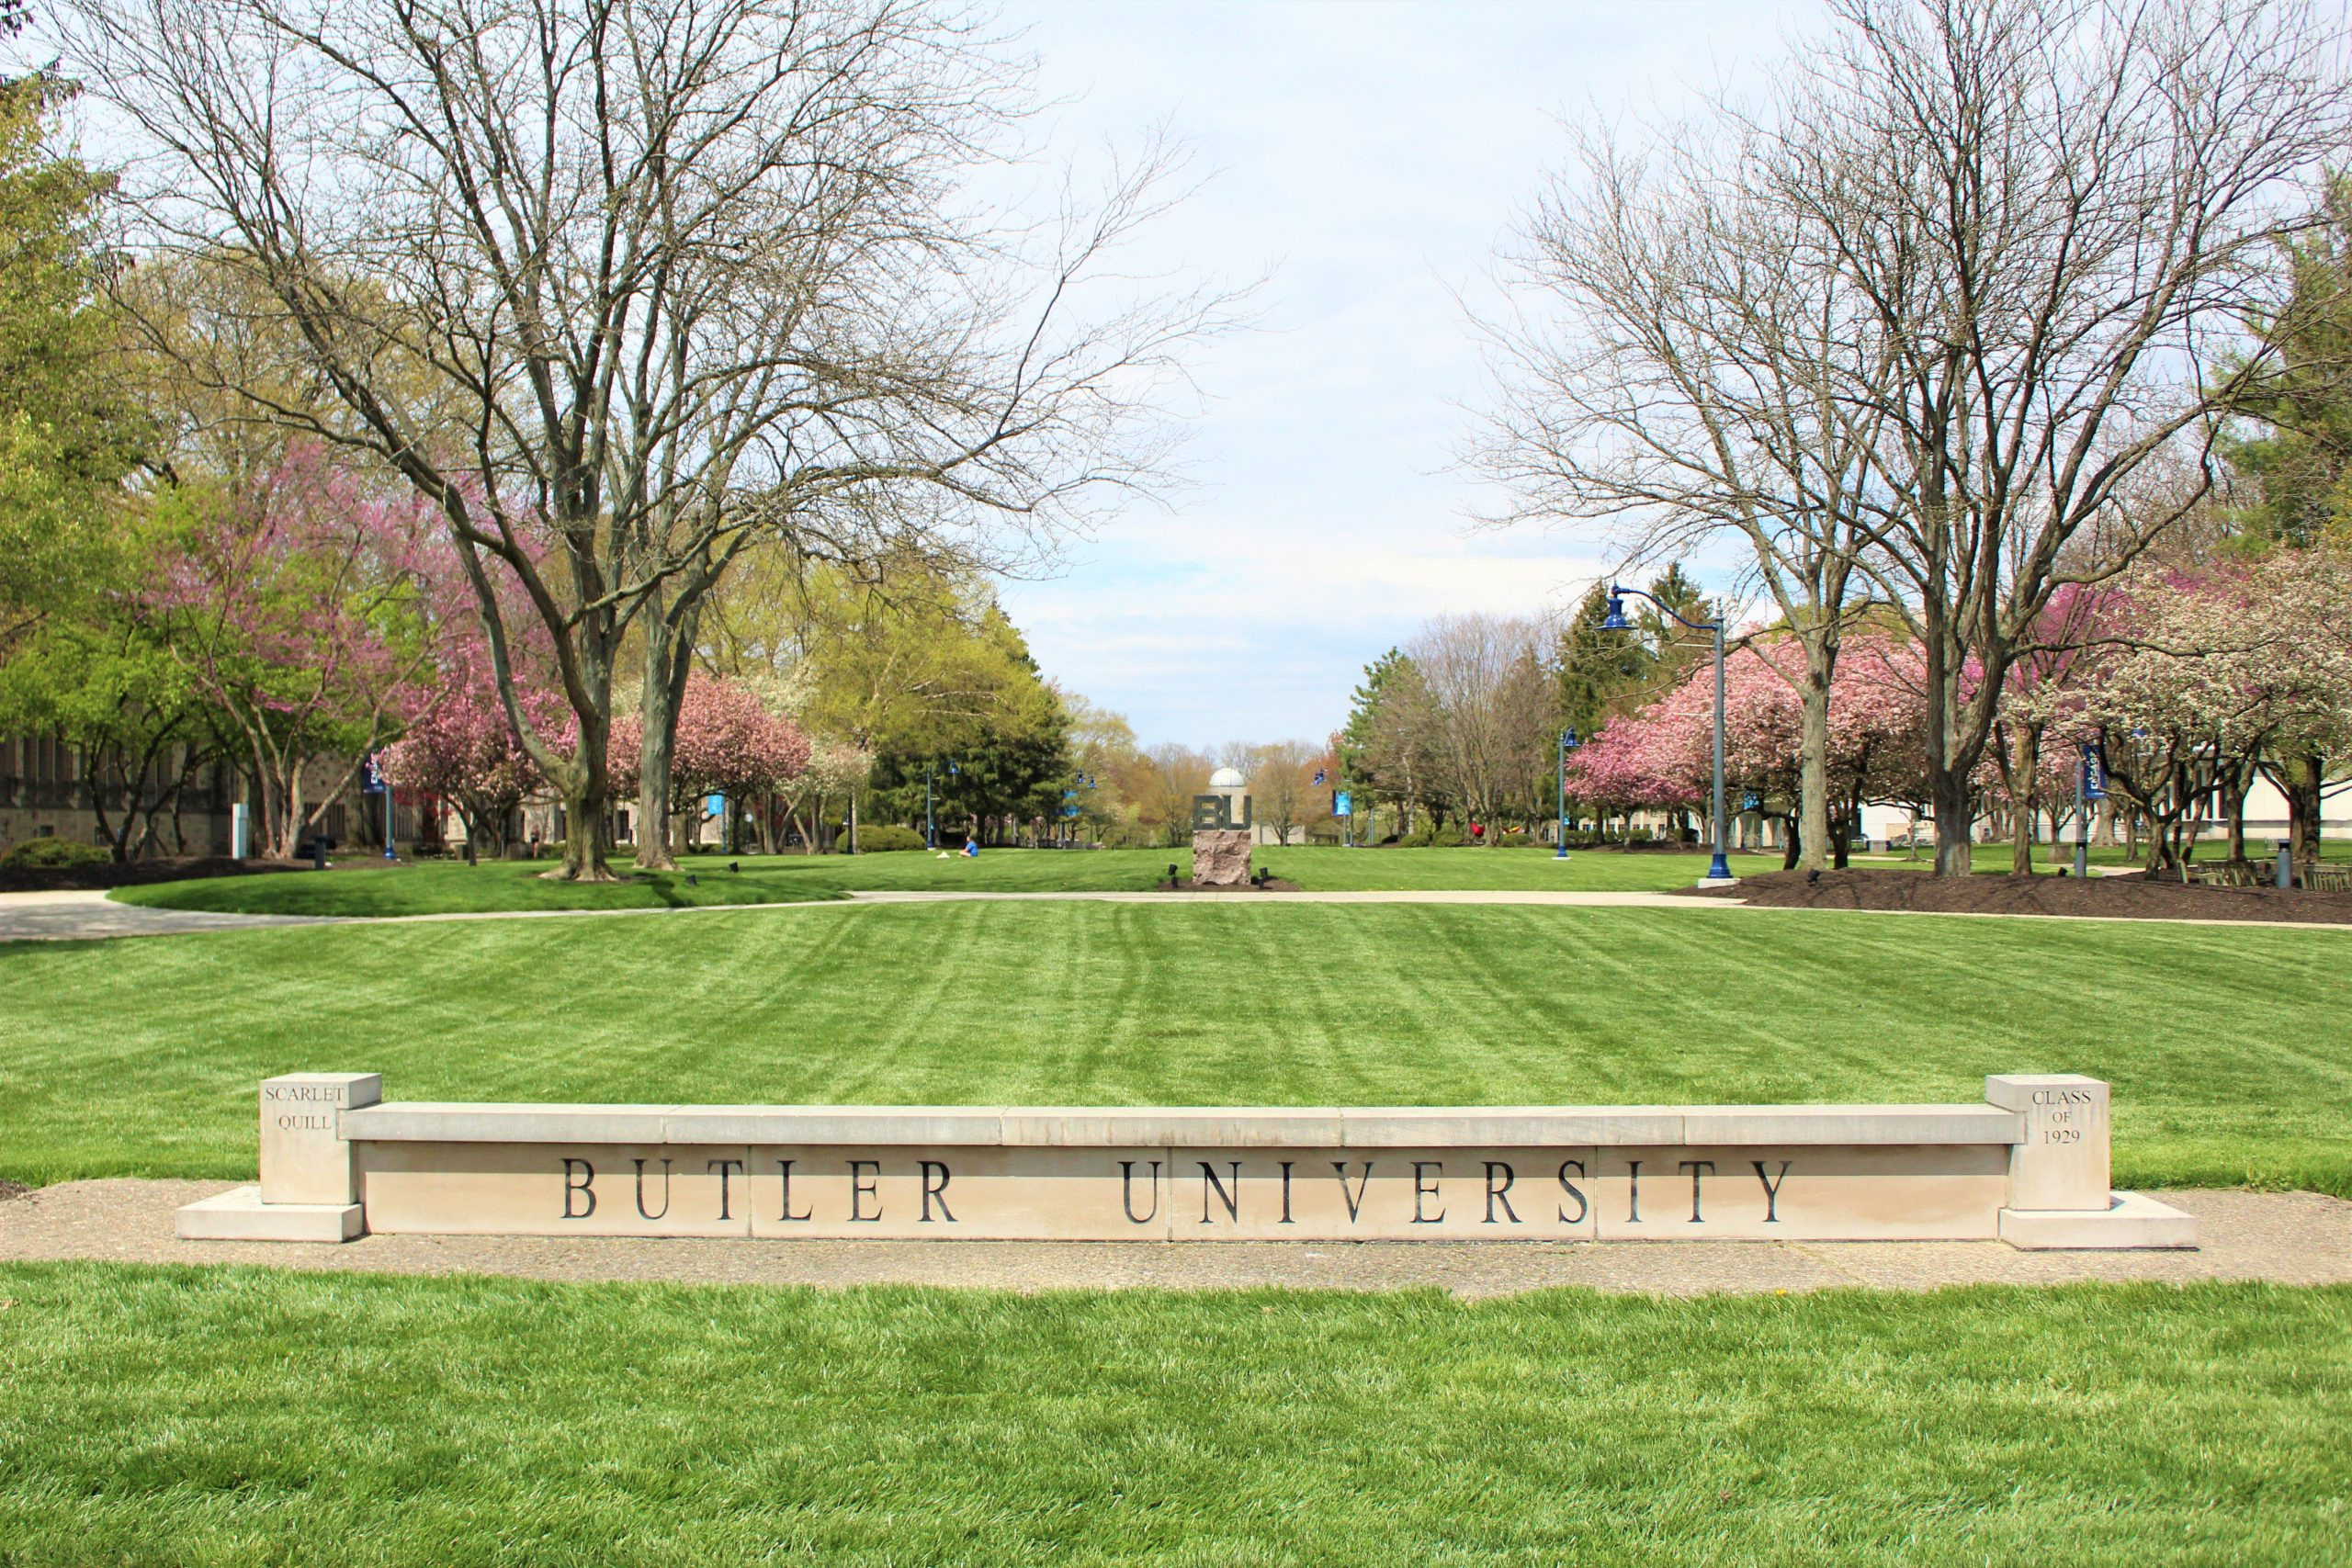 Butler-Tarkington - Butler University